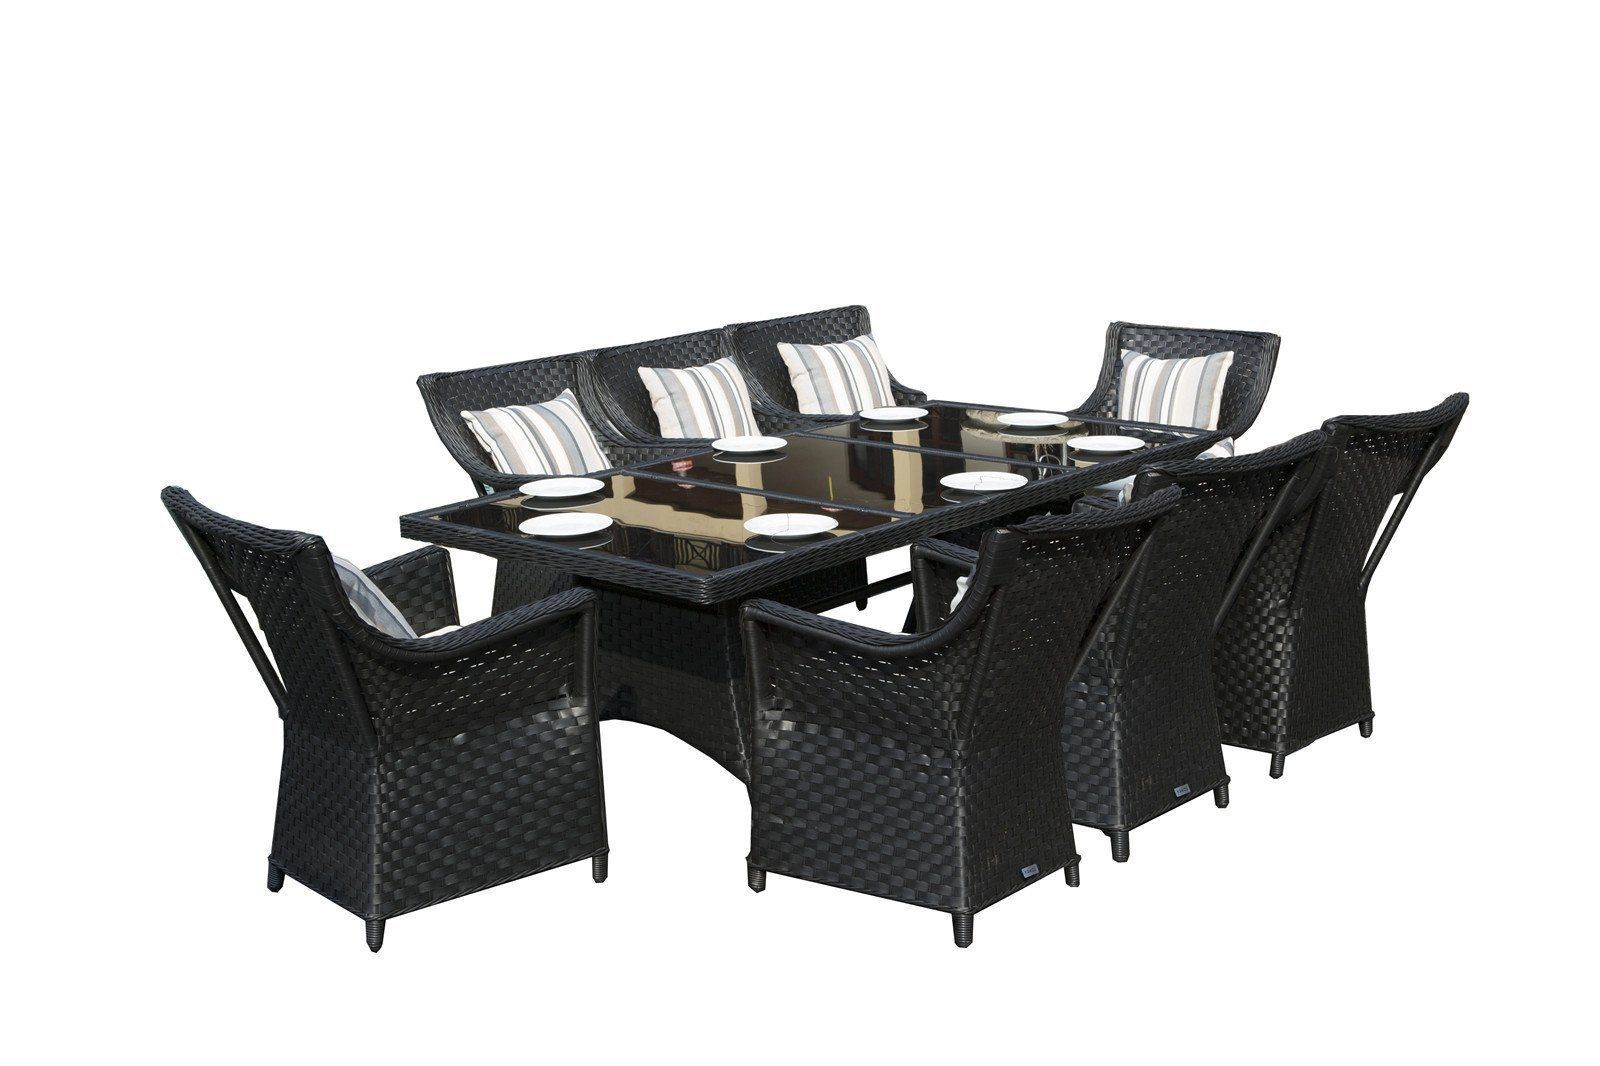 Rectangle Rattan Dining Table with 8 Chairs Garden Conservatory Patio Dining set image 2